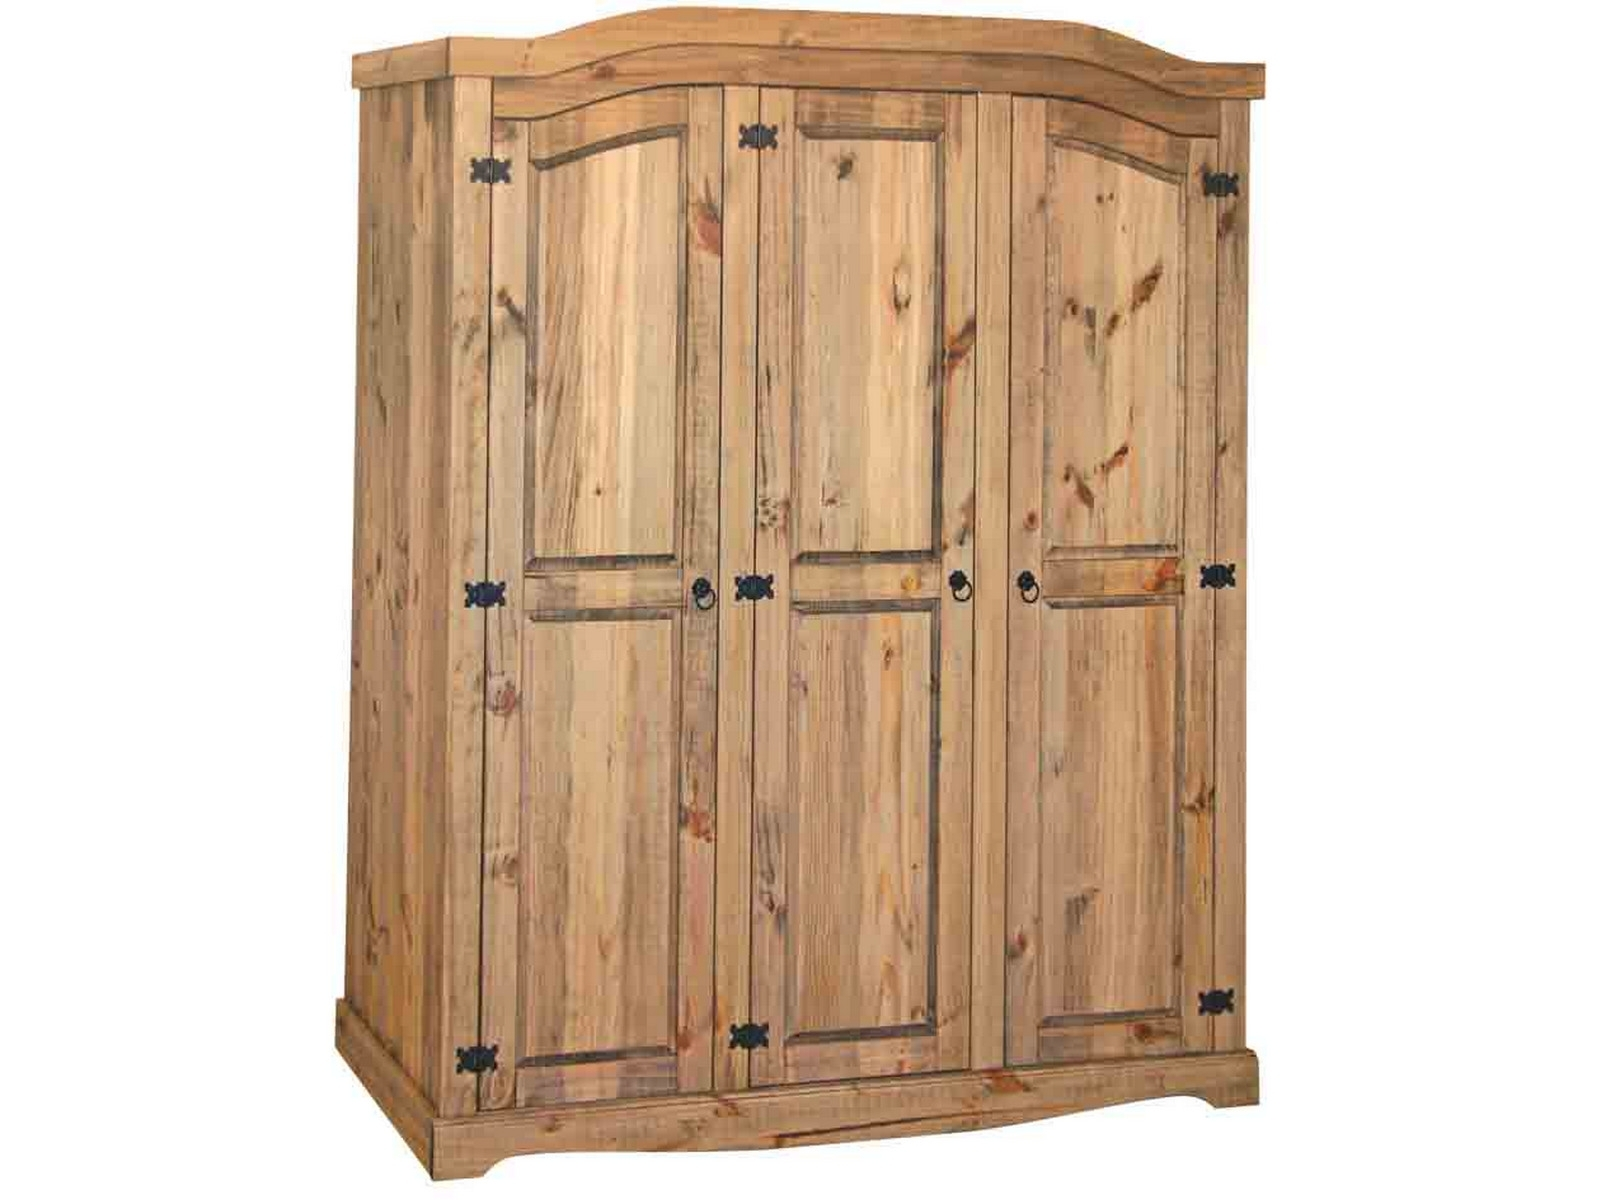 Premium Quality Corona Waxed Solid Mexican Pine 3 Door Triple Intended For Most Popular Corona Wardrobes With 3 Doors (View 13 of 15)